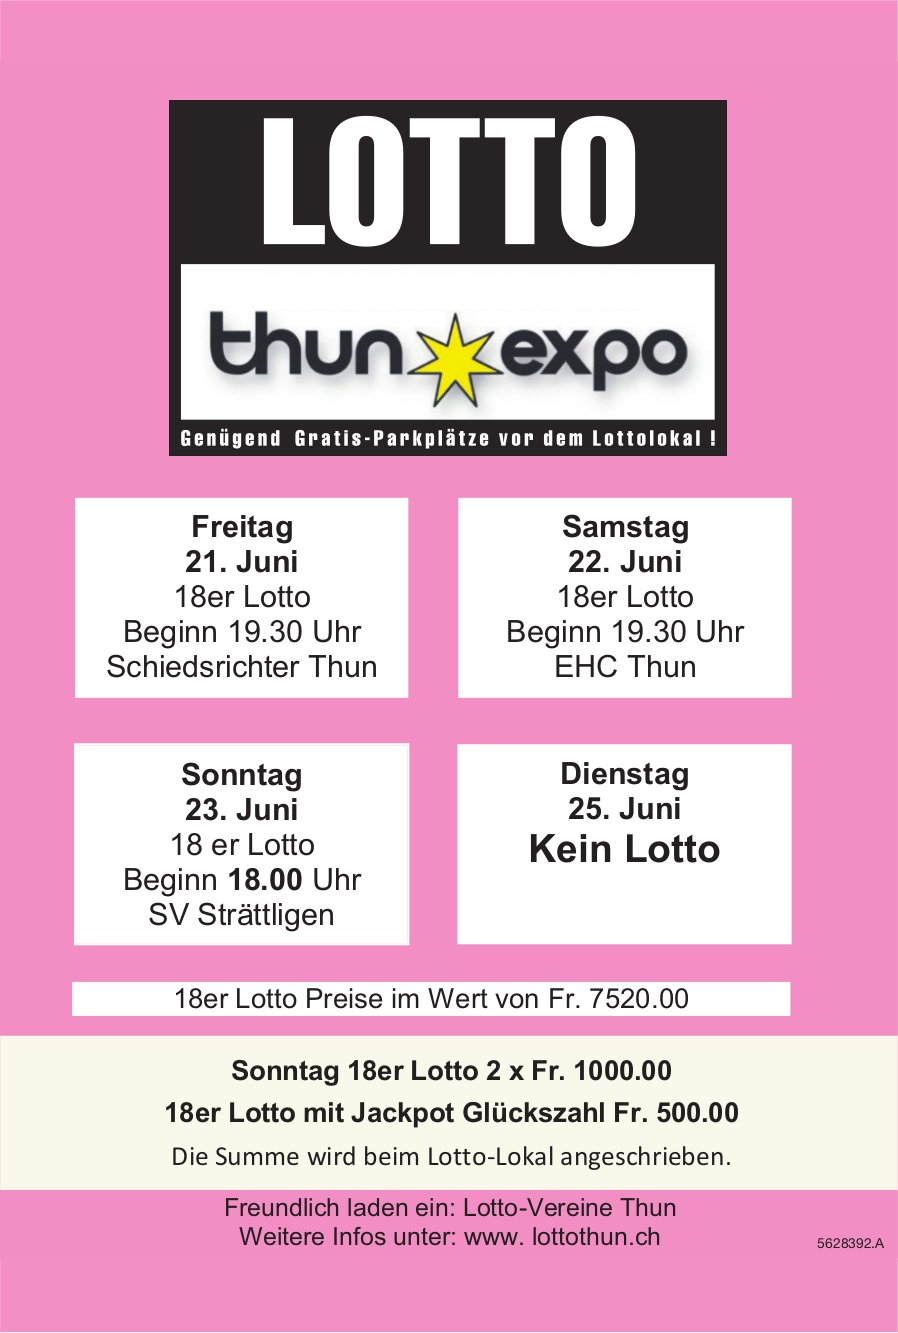 LOTTO Thun Expo, 21./22./23. Juni - Kein Lotto am 25. Juni